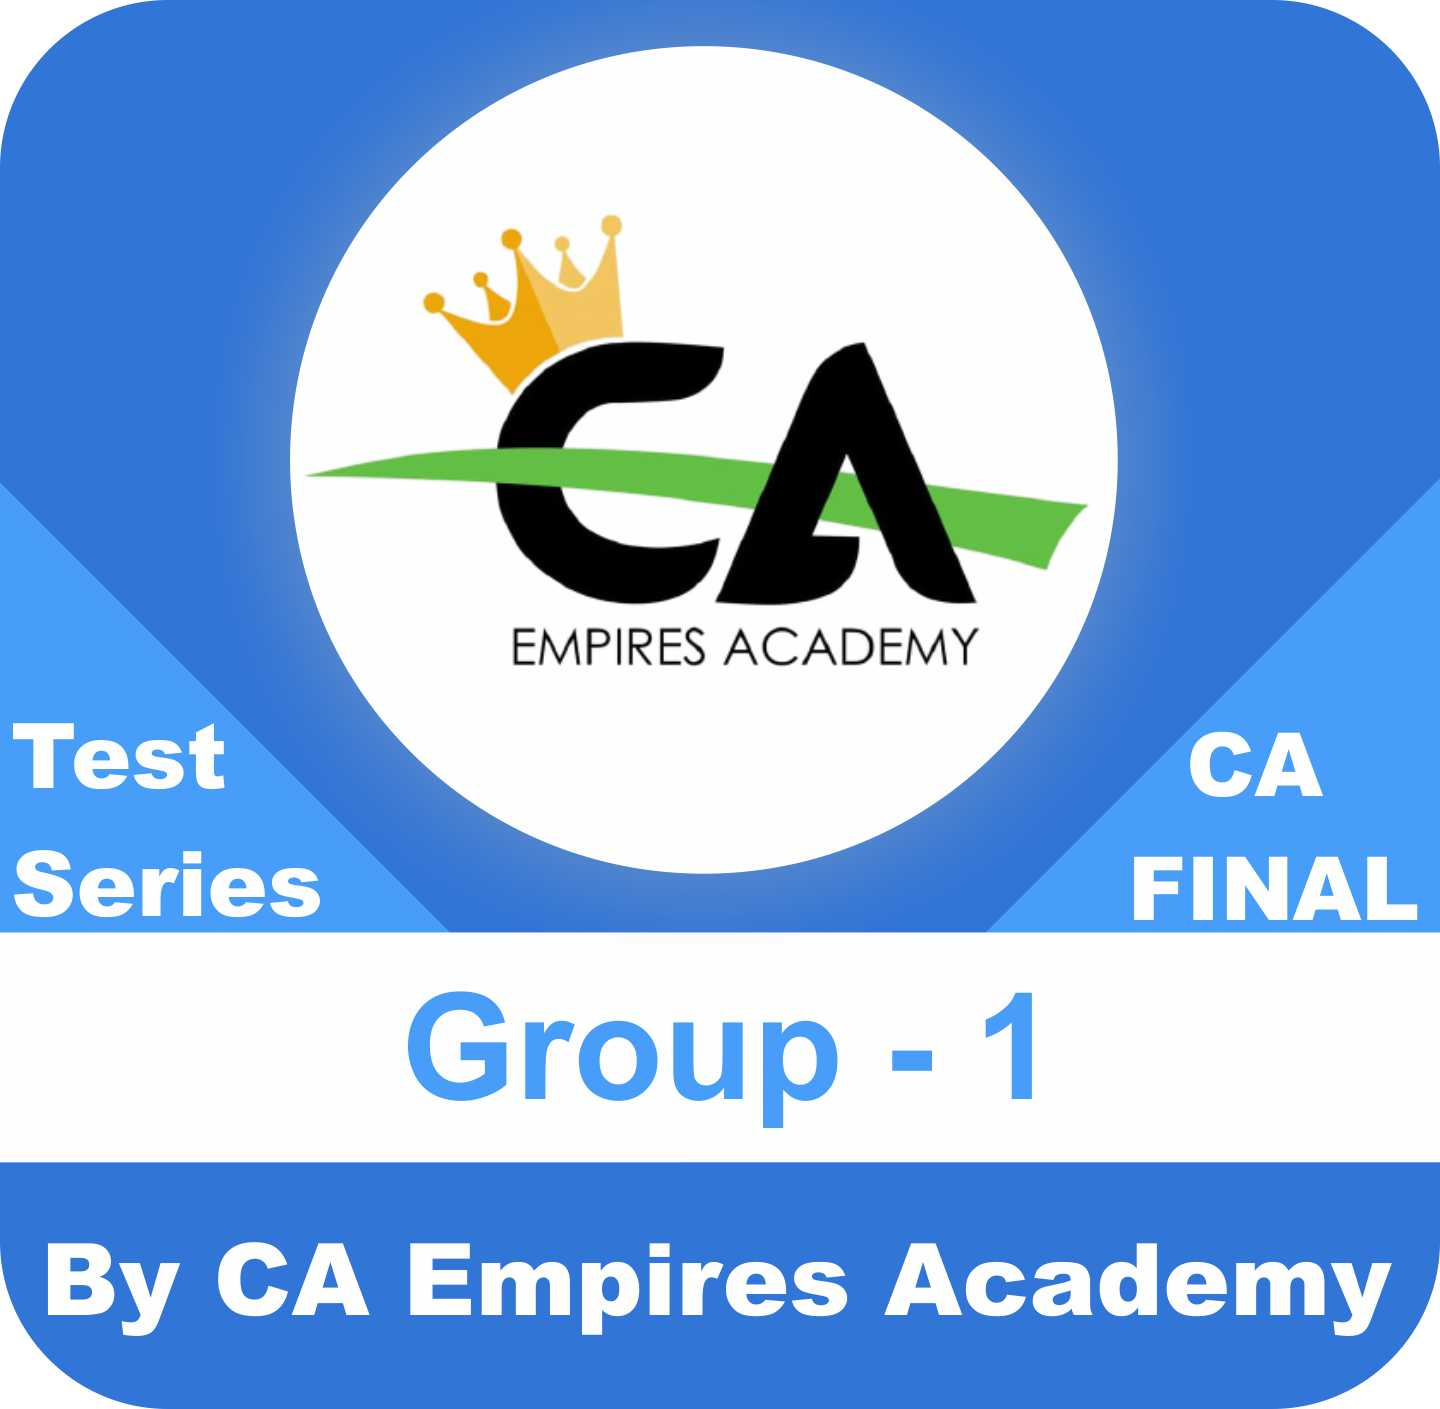 CA Final Group One Test Series in Bronze Plan by CA Empires Academy